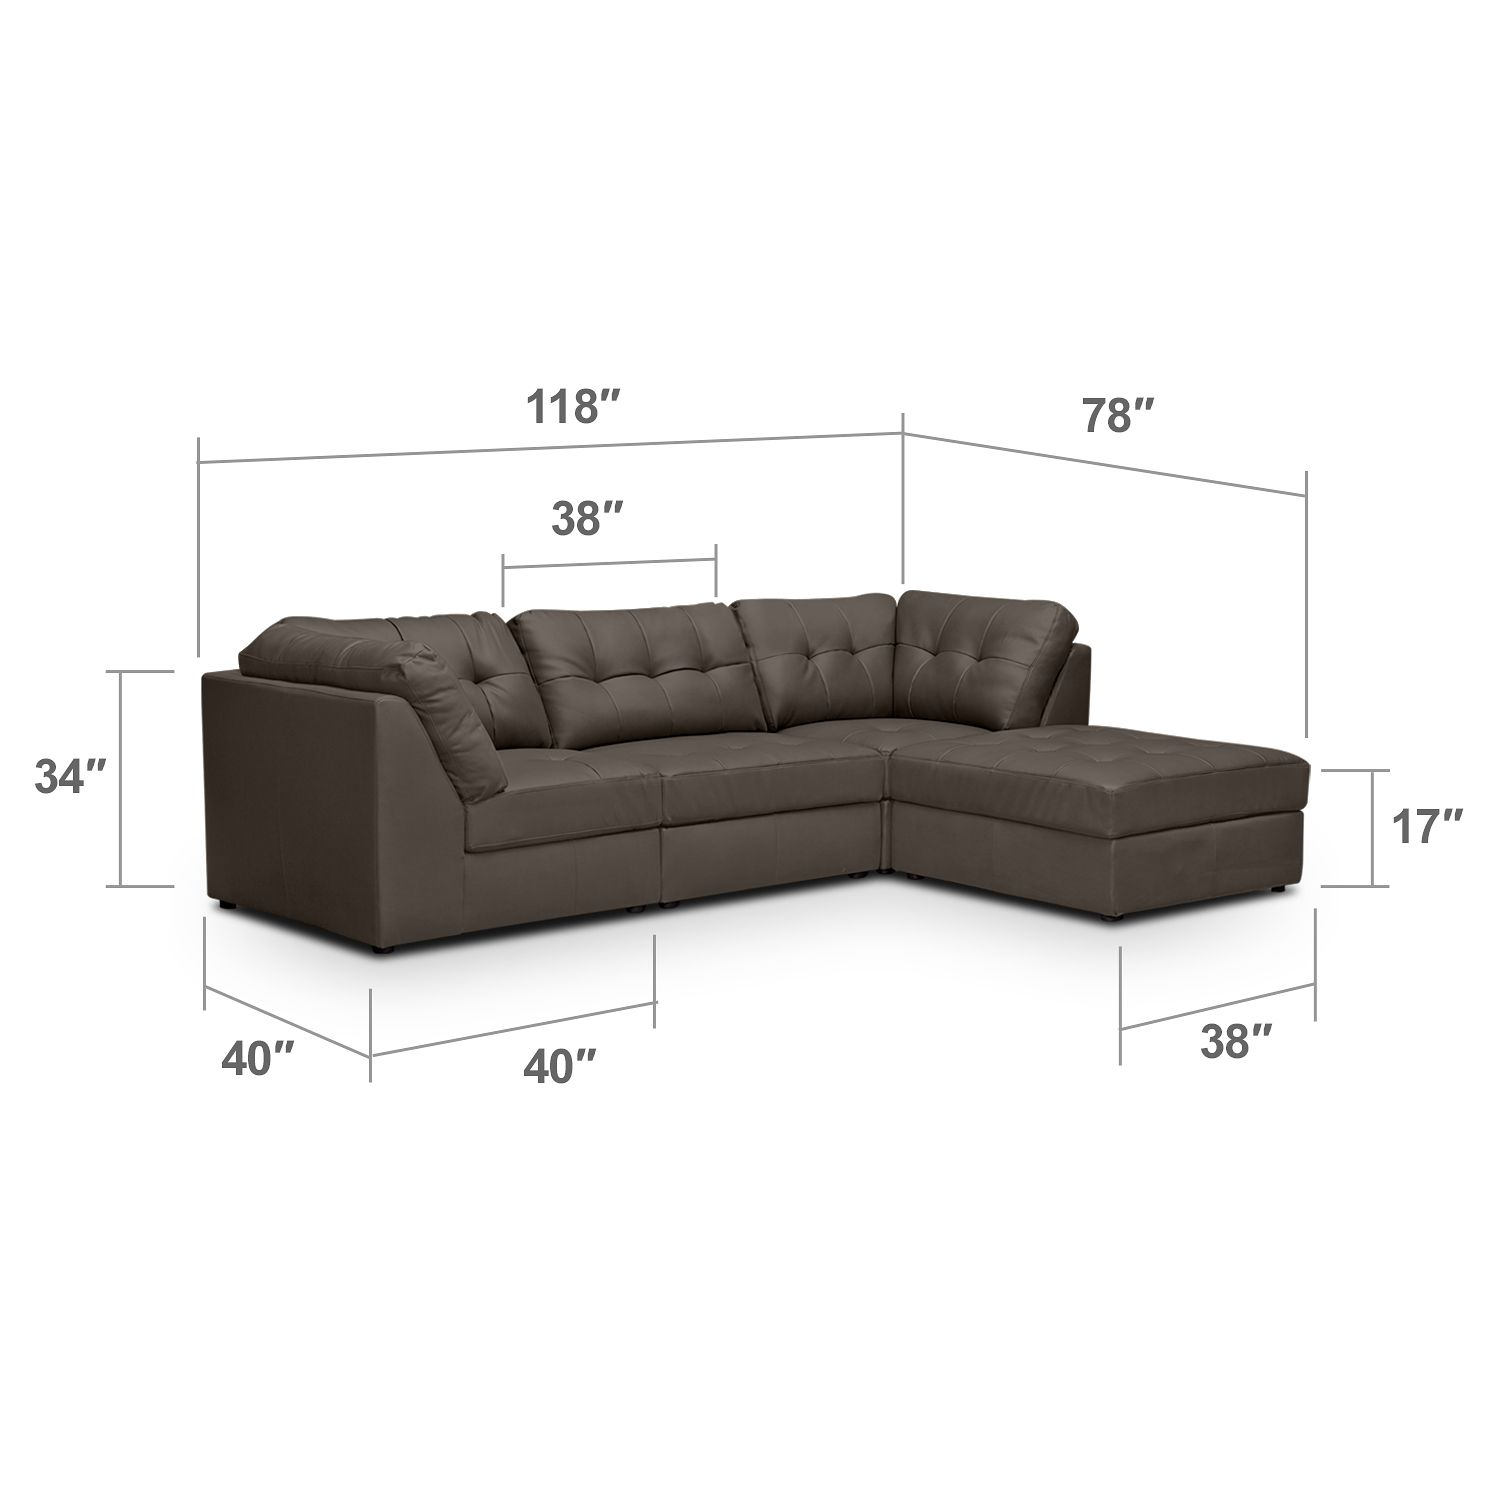 Remarkable Aventura Iii 4 Pc Sectional American Signature Furniture Andrewgaddart Wooden Chair Designs For Living Room Andrewgaddartcom